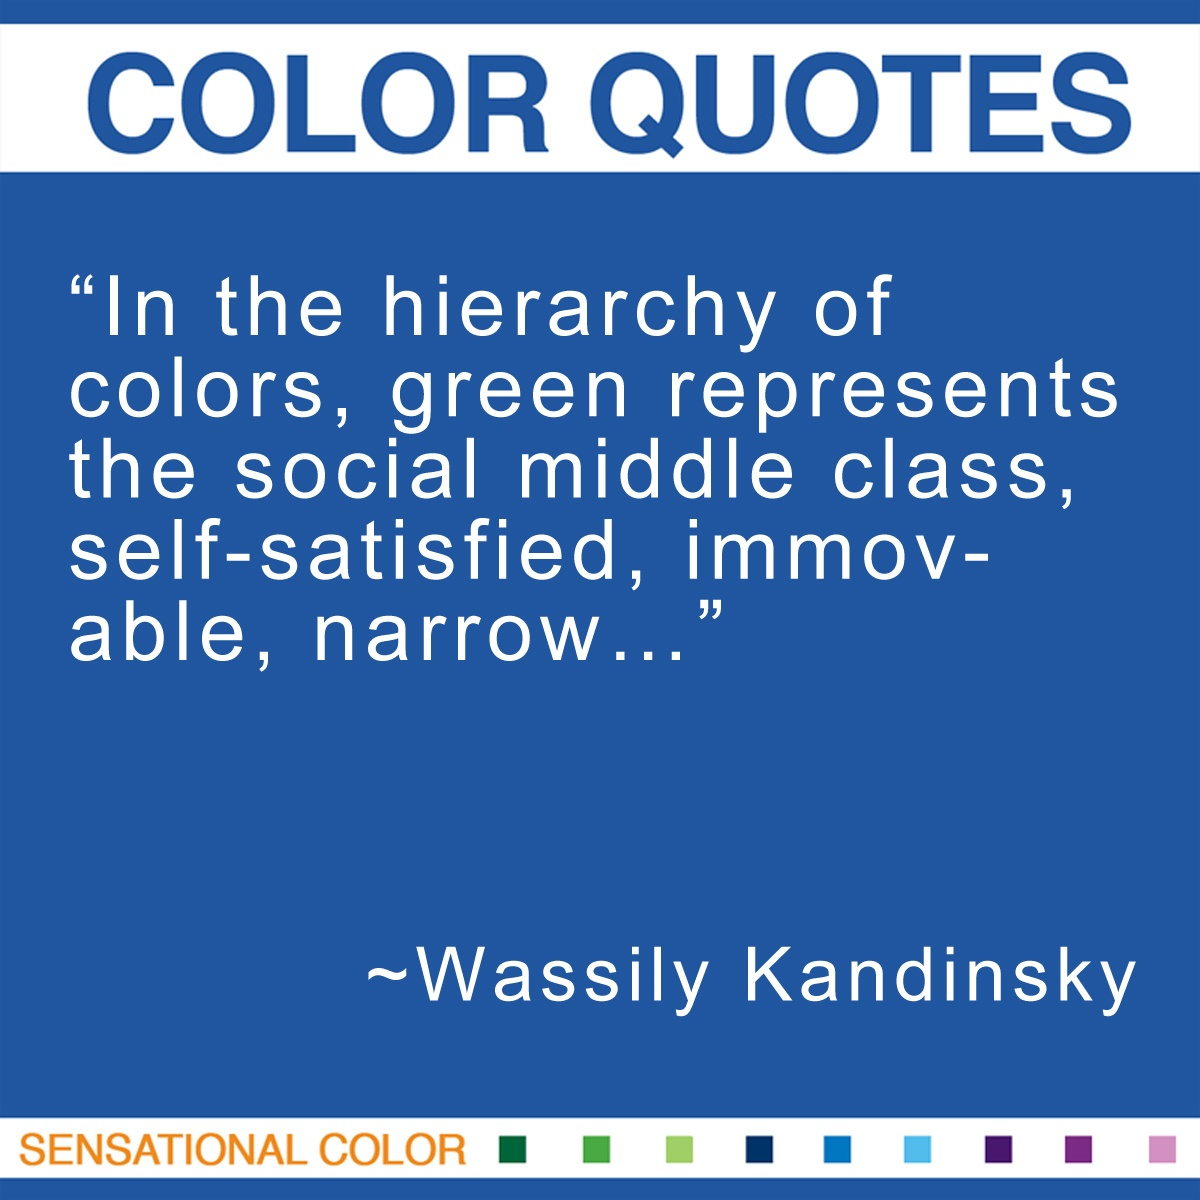 """In the hierarchy of colors, green represents the social middle class, self-satisfied, immovable, narrow…"" - Wassily Kandinsky"